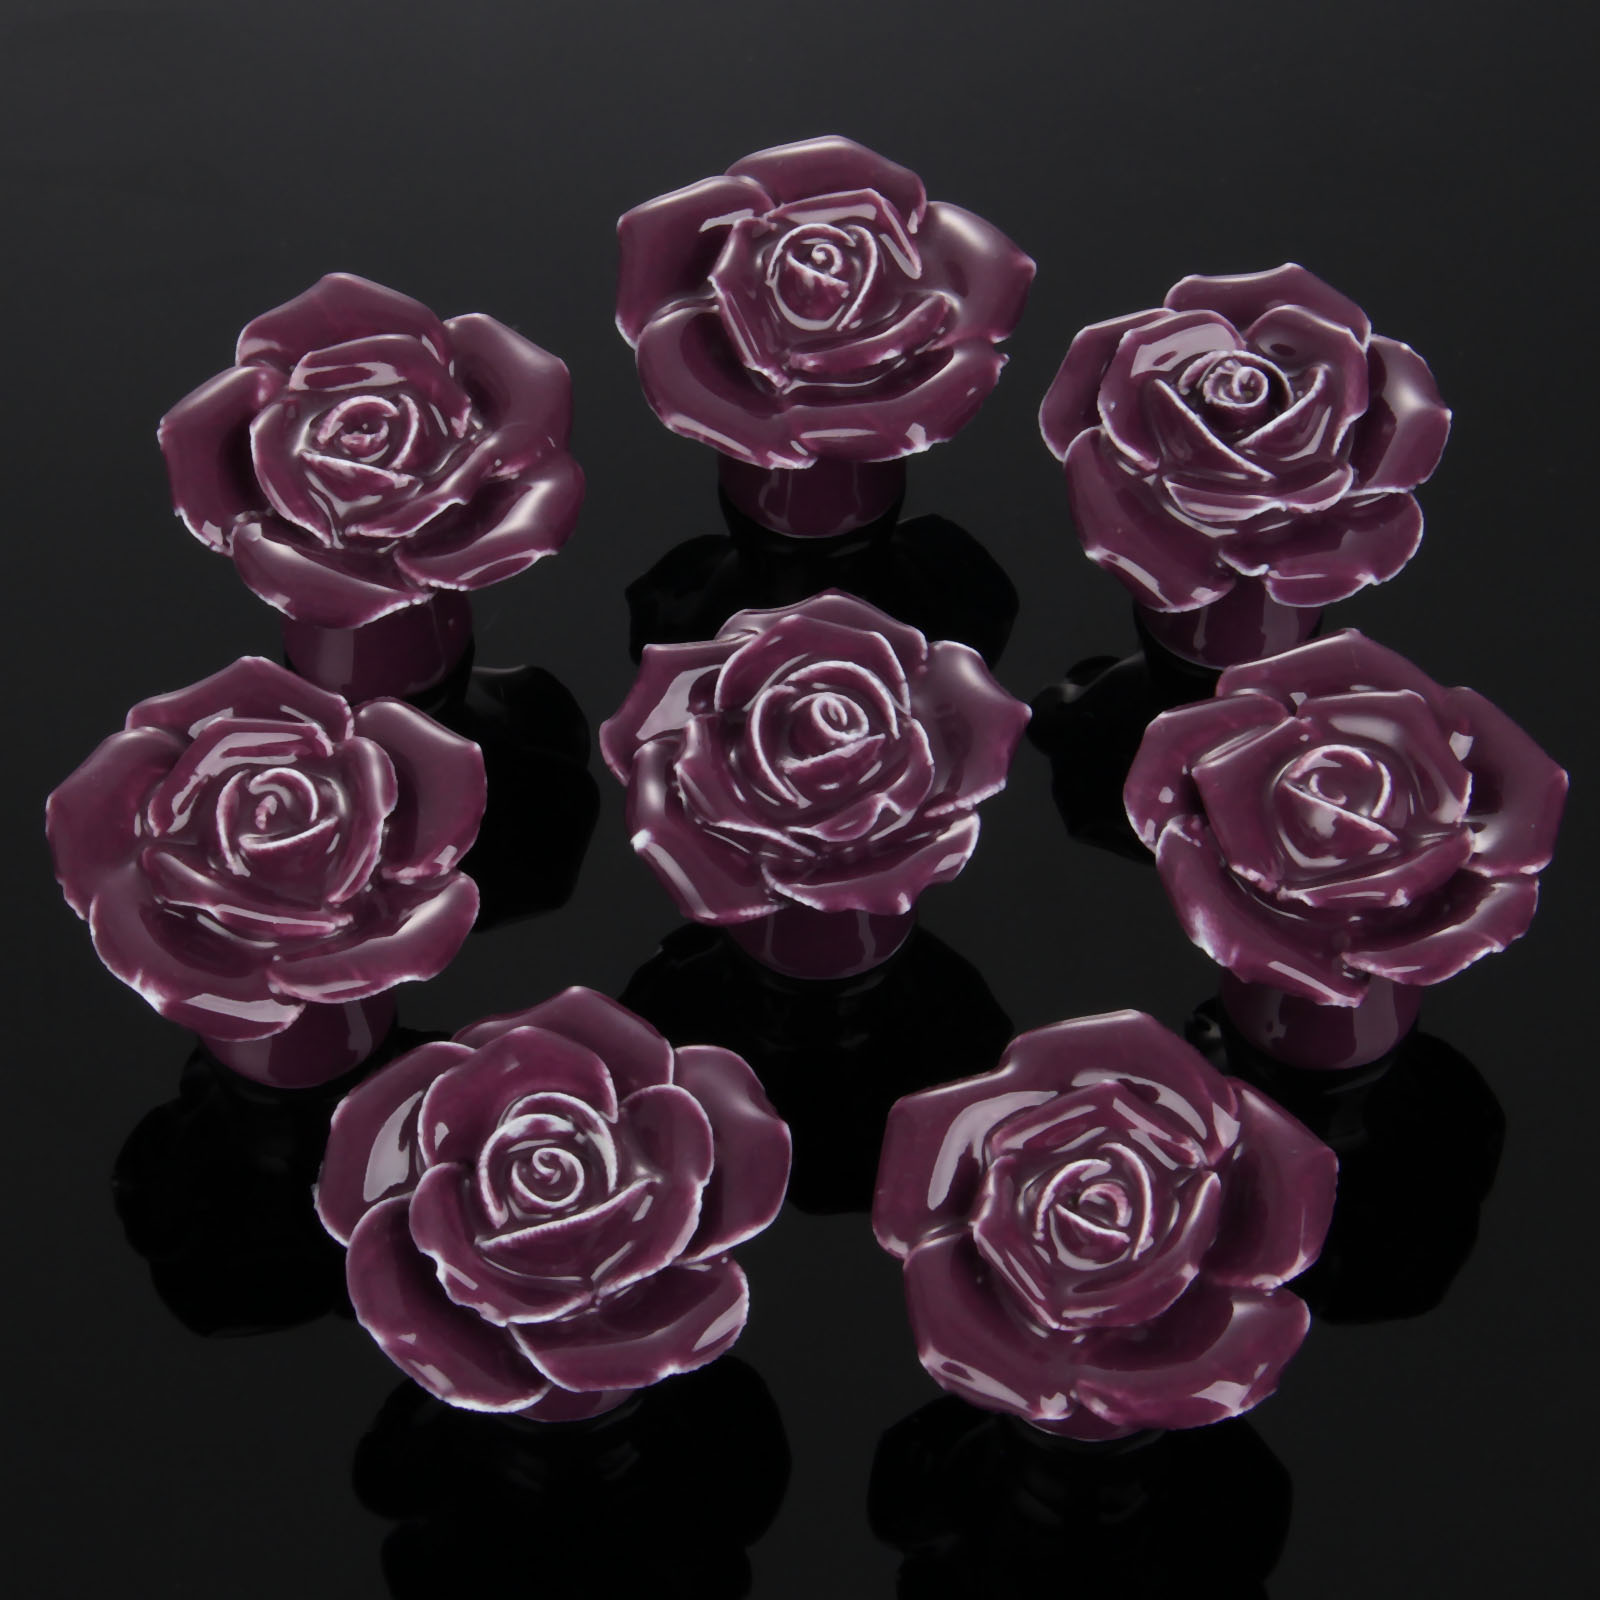 8Pcs Furniture Handles Ceramic Cabinet Knobs and Handles Door Cupboard Drawer Kitchen Pull Handles Furniture Fitting Purple Rose furniture drawer handles wardrobe door handle and knobs cabinet kitchen hardware pull gold silver long hole spacing c c 96 224mm